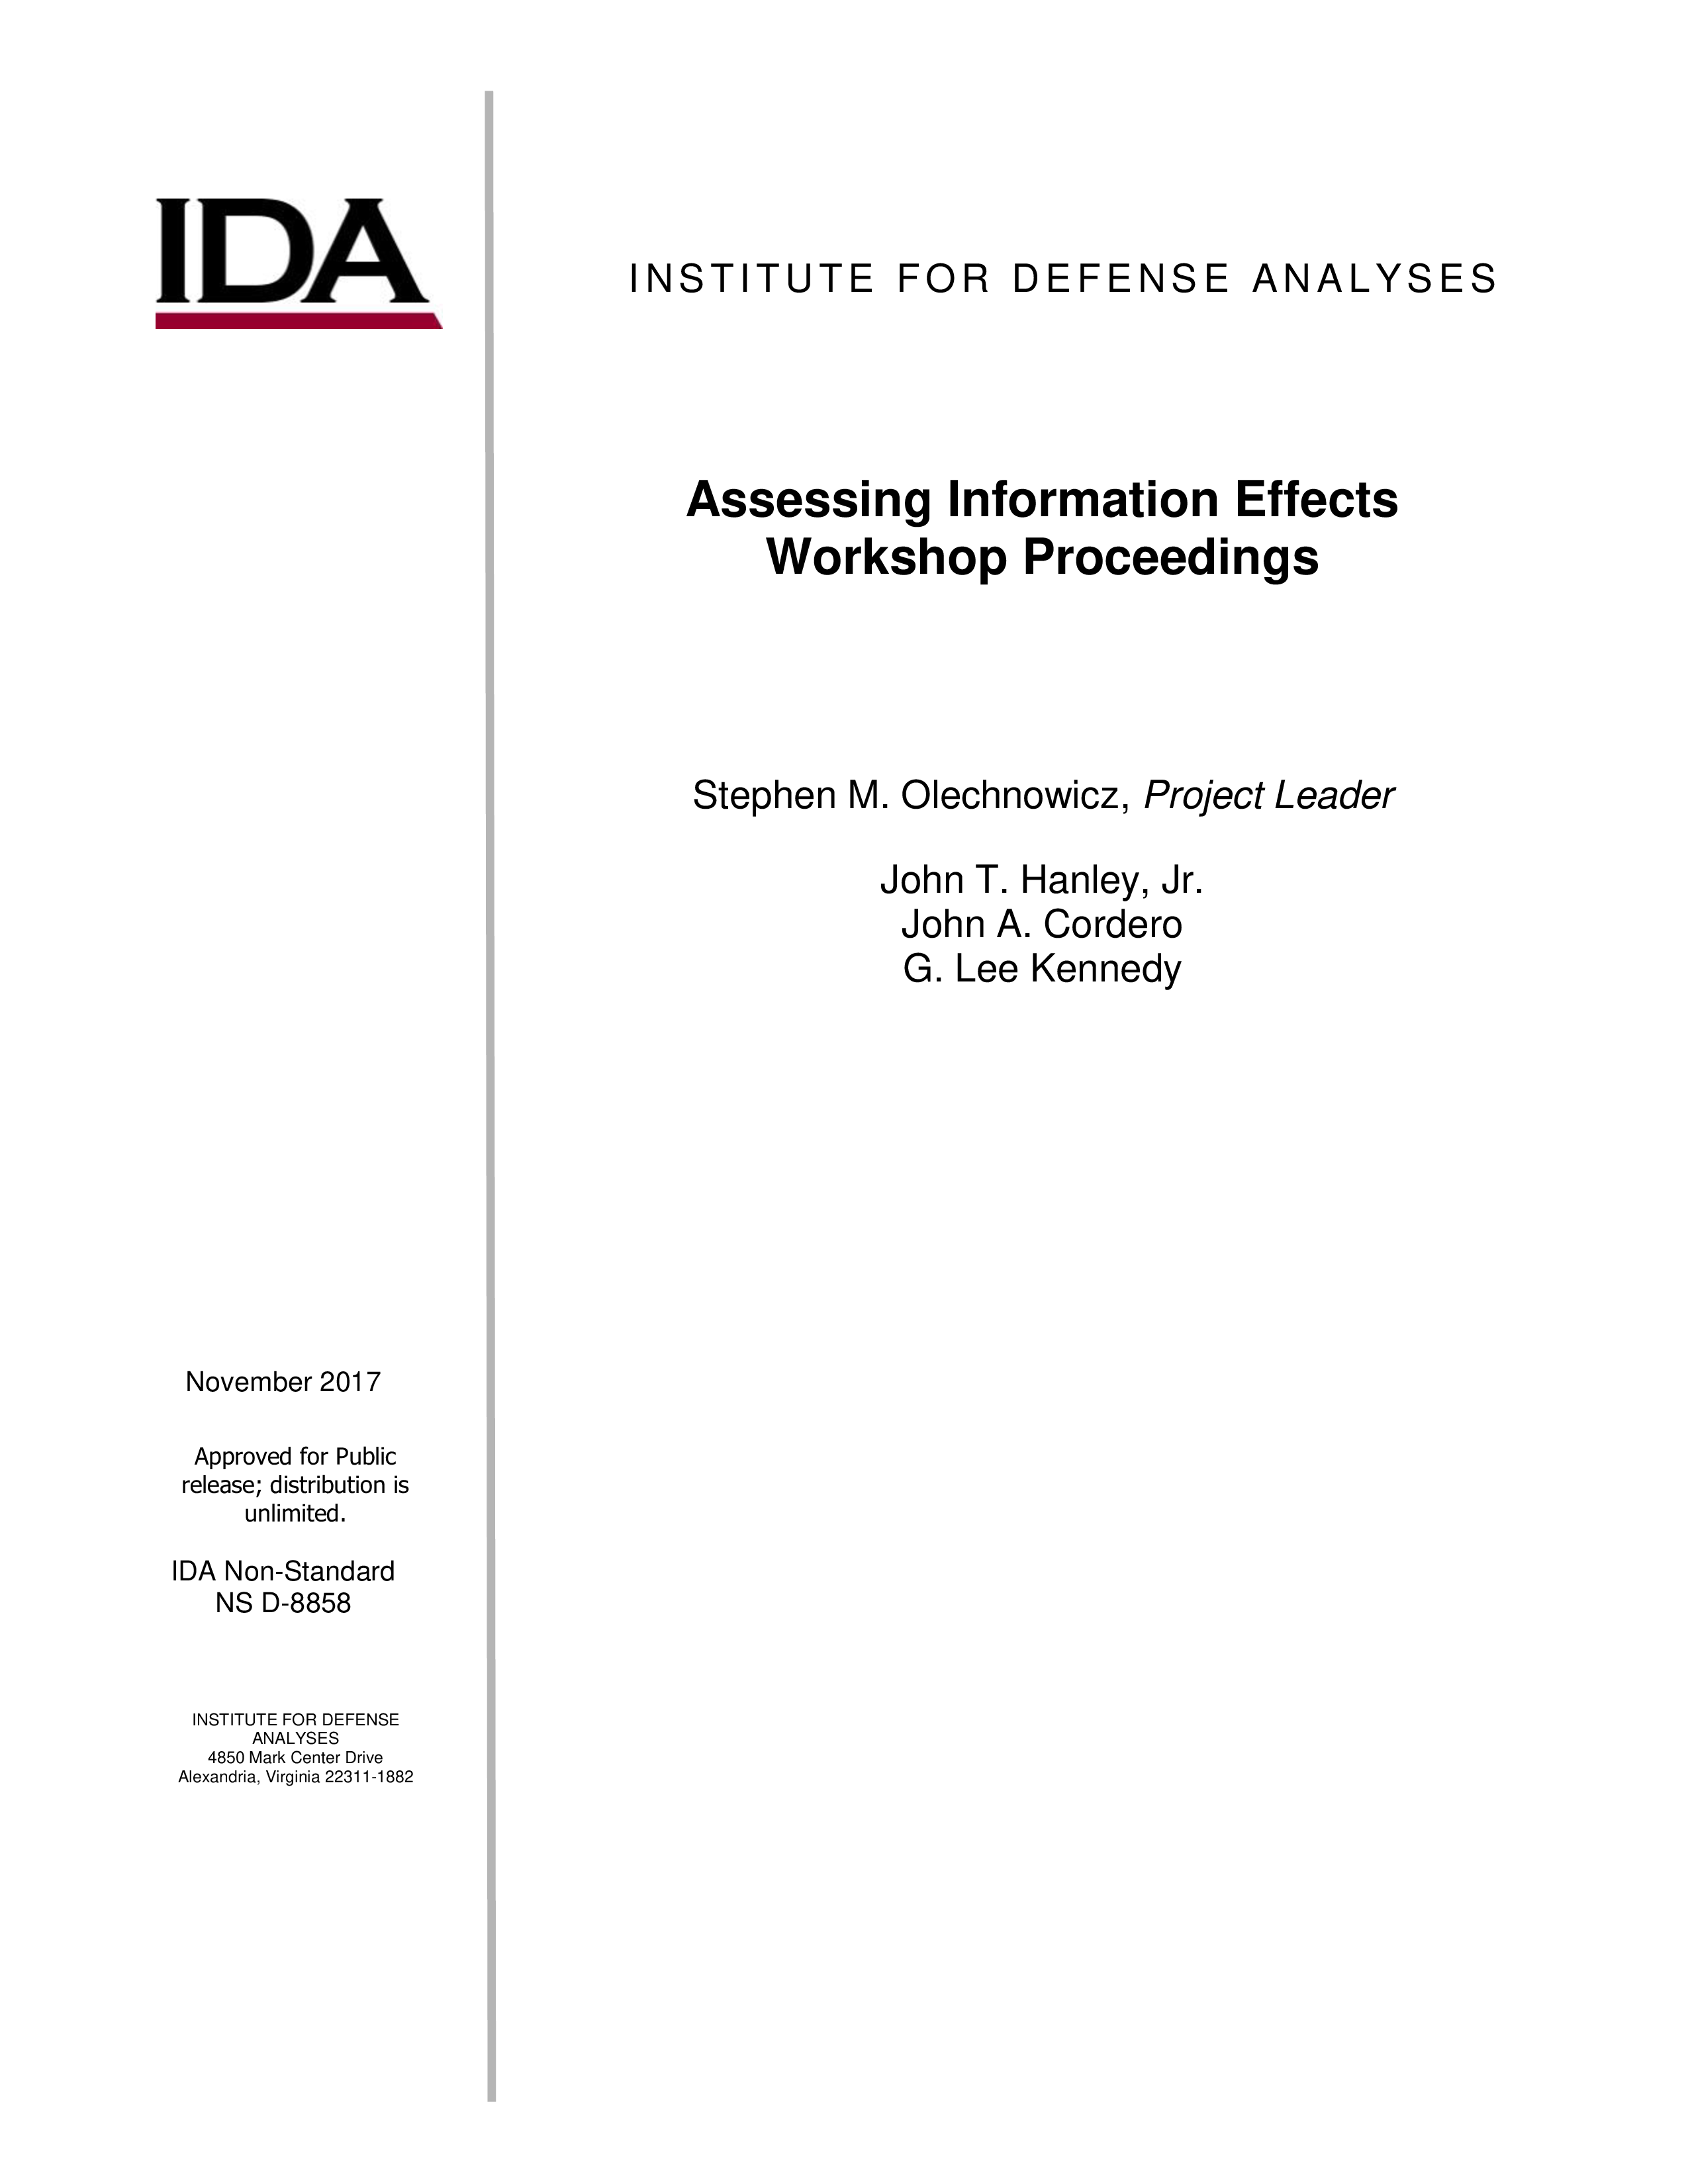 Assessing Information Effects Workshop Proceedings